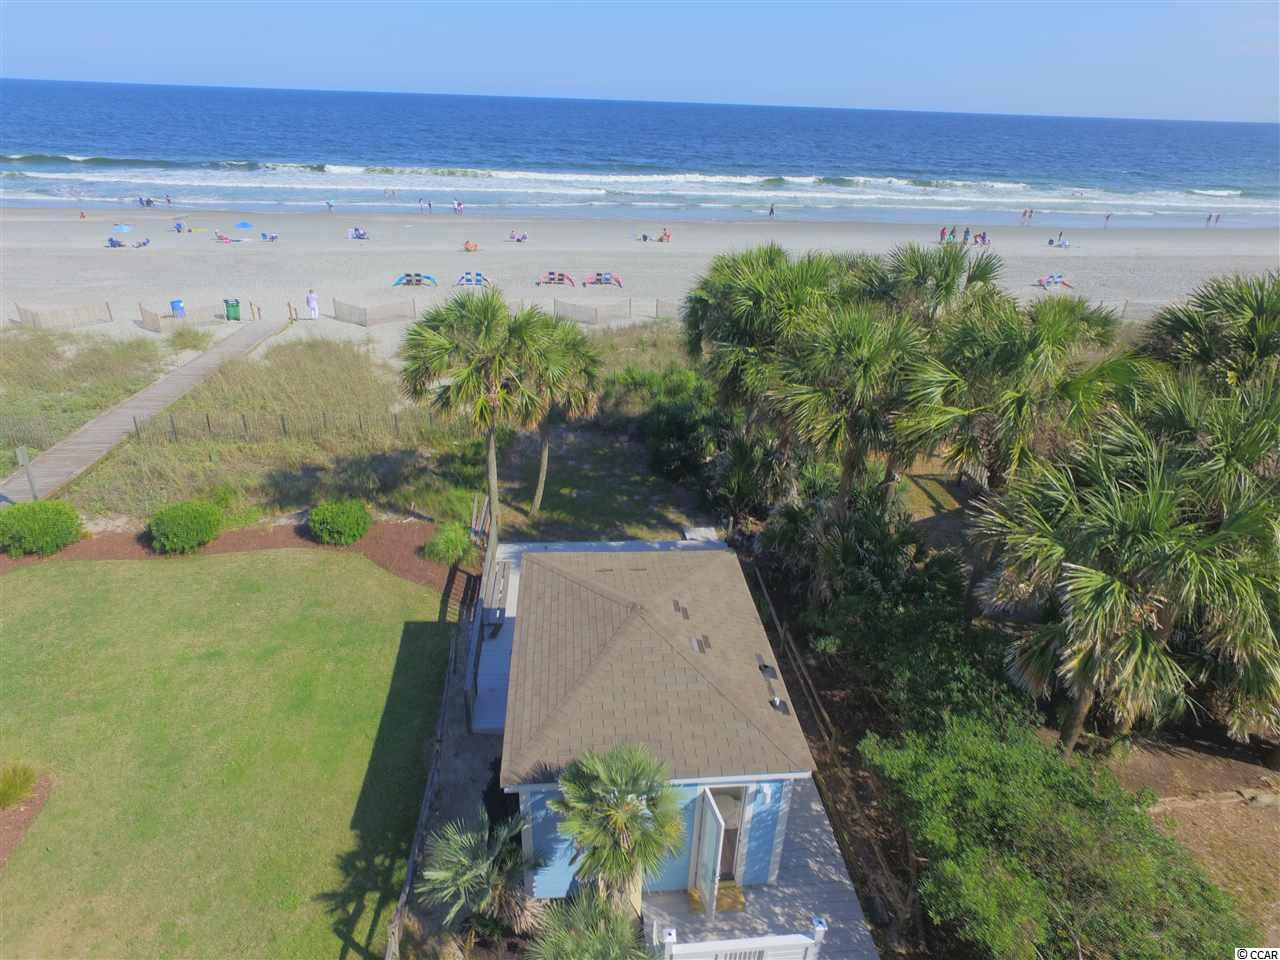 This remodeled day cabana is truly your piece of paradise located on the oceanfront.  What makes this so special is the prime location and the rarity of this highly sought after gem on the pristine white sands of  Myrtle Beach.  Your diamond on the beach has been renovated inside and out in a cool Coastal theme.  Enjoy the large deck, yard for sunning and games, convenience of a restroom, air conditioning, dish sink or wet bar, full size refrigerator, beach accessory storage, daybed, shower and amazing views and sea breezes from this oceanfront property while you enjoy the beach.  The exterior is durable concrete fiber cement siding.  The location is central to all the fun of the Grand Strand including shopping, dining, golf and attractions.  Don't miss out on this special opportunity.